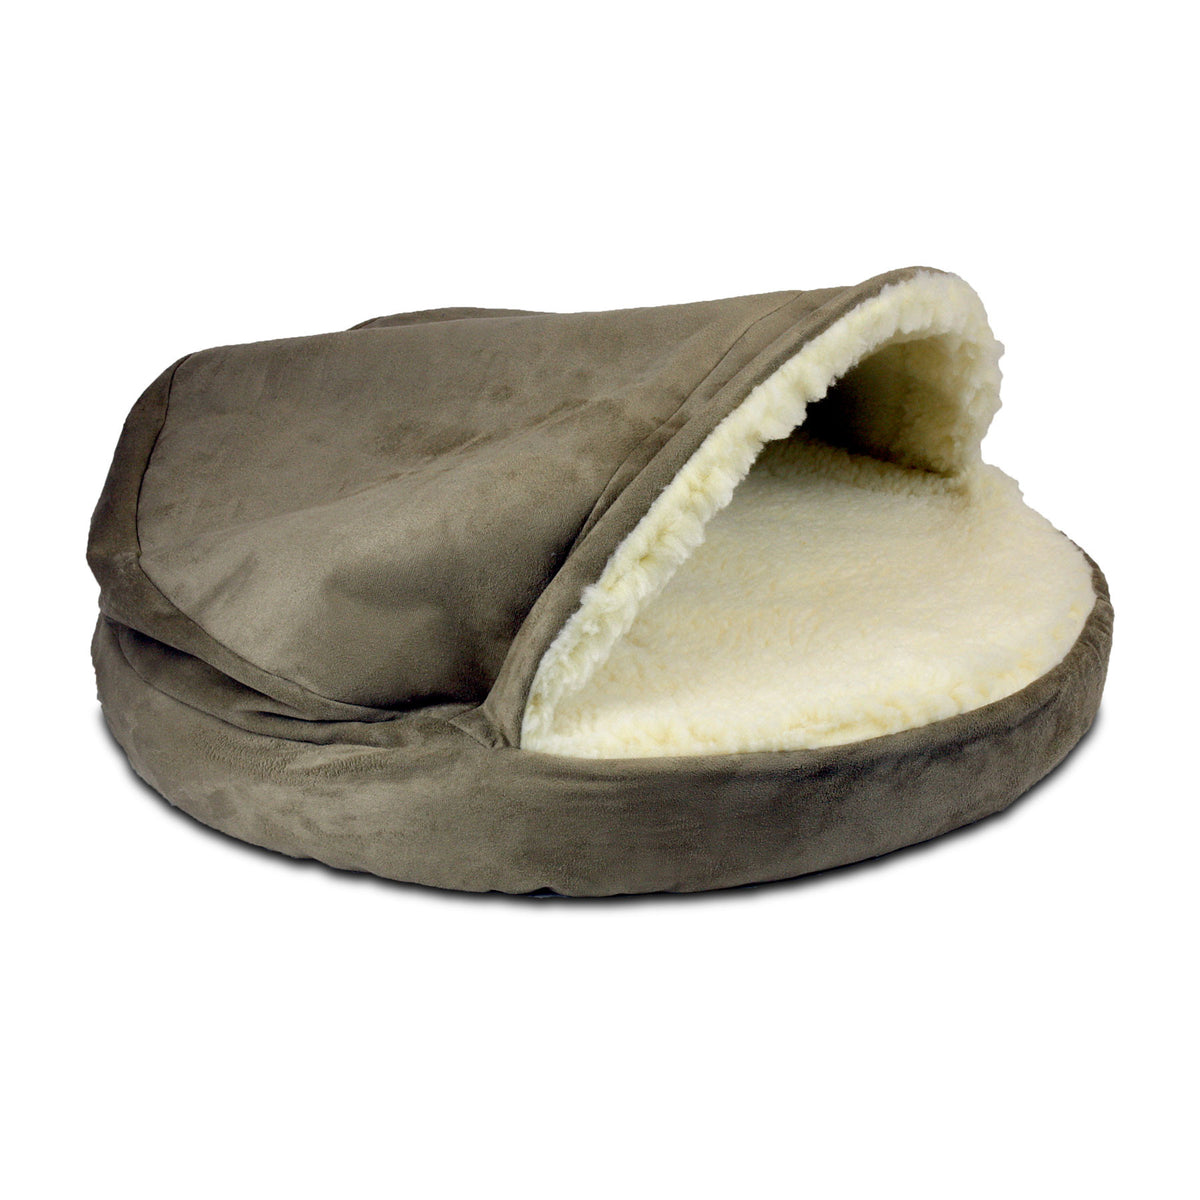 Snoozer Luxury Orthopedic Cozy Cave - Dark Chocolate